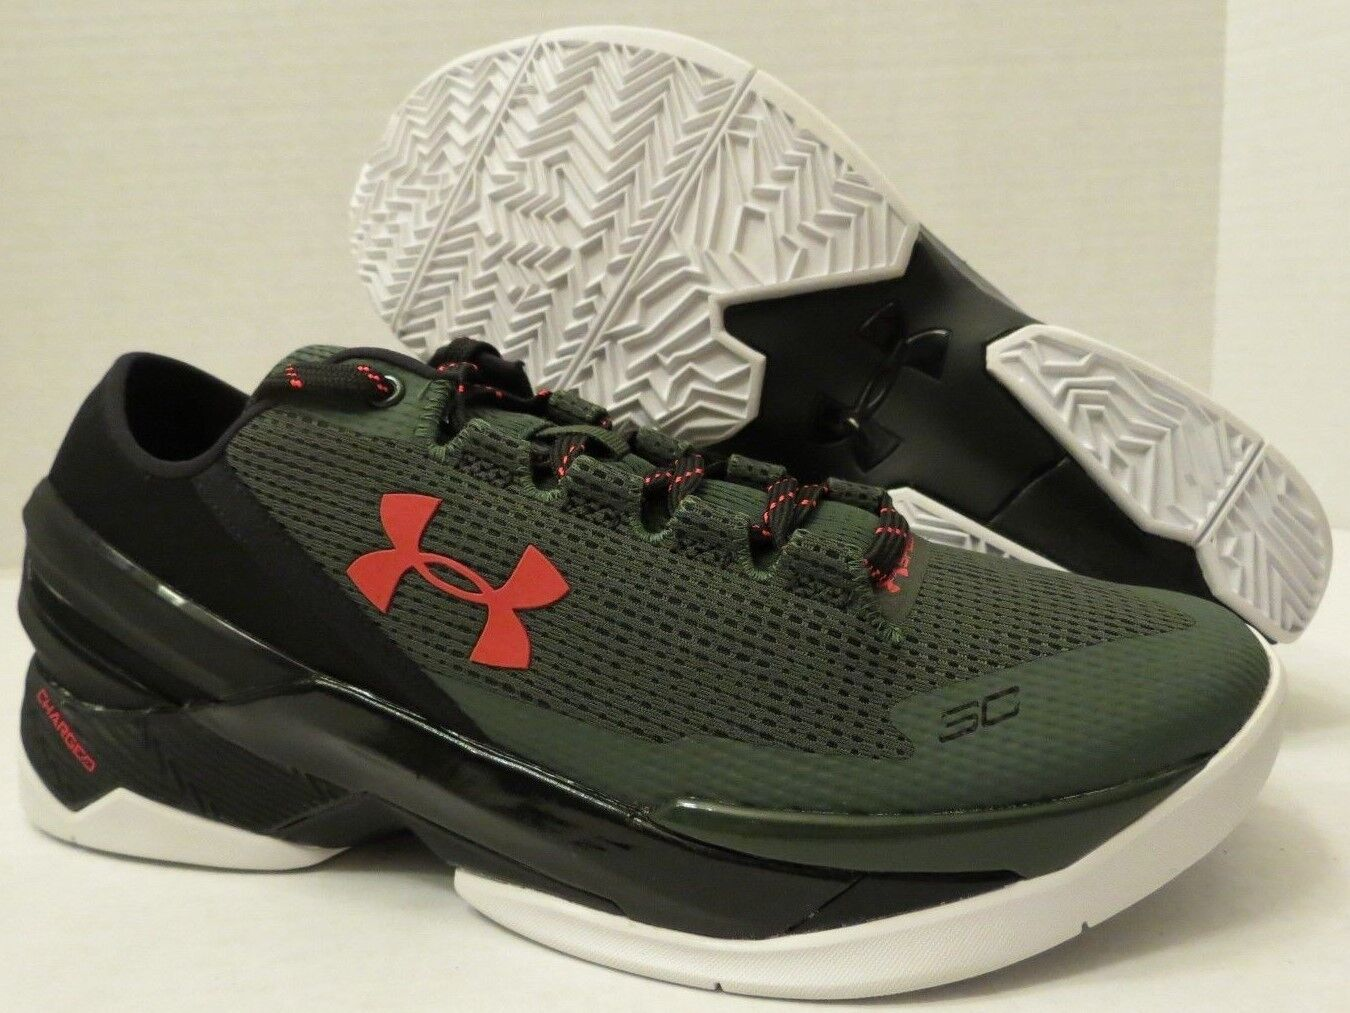 UNDER ARMOUR CURRY 2 LOW 1264001 994 COMBAT GREEN - BLACK (MEN'S 8.5)